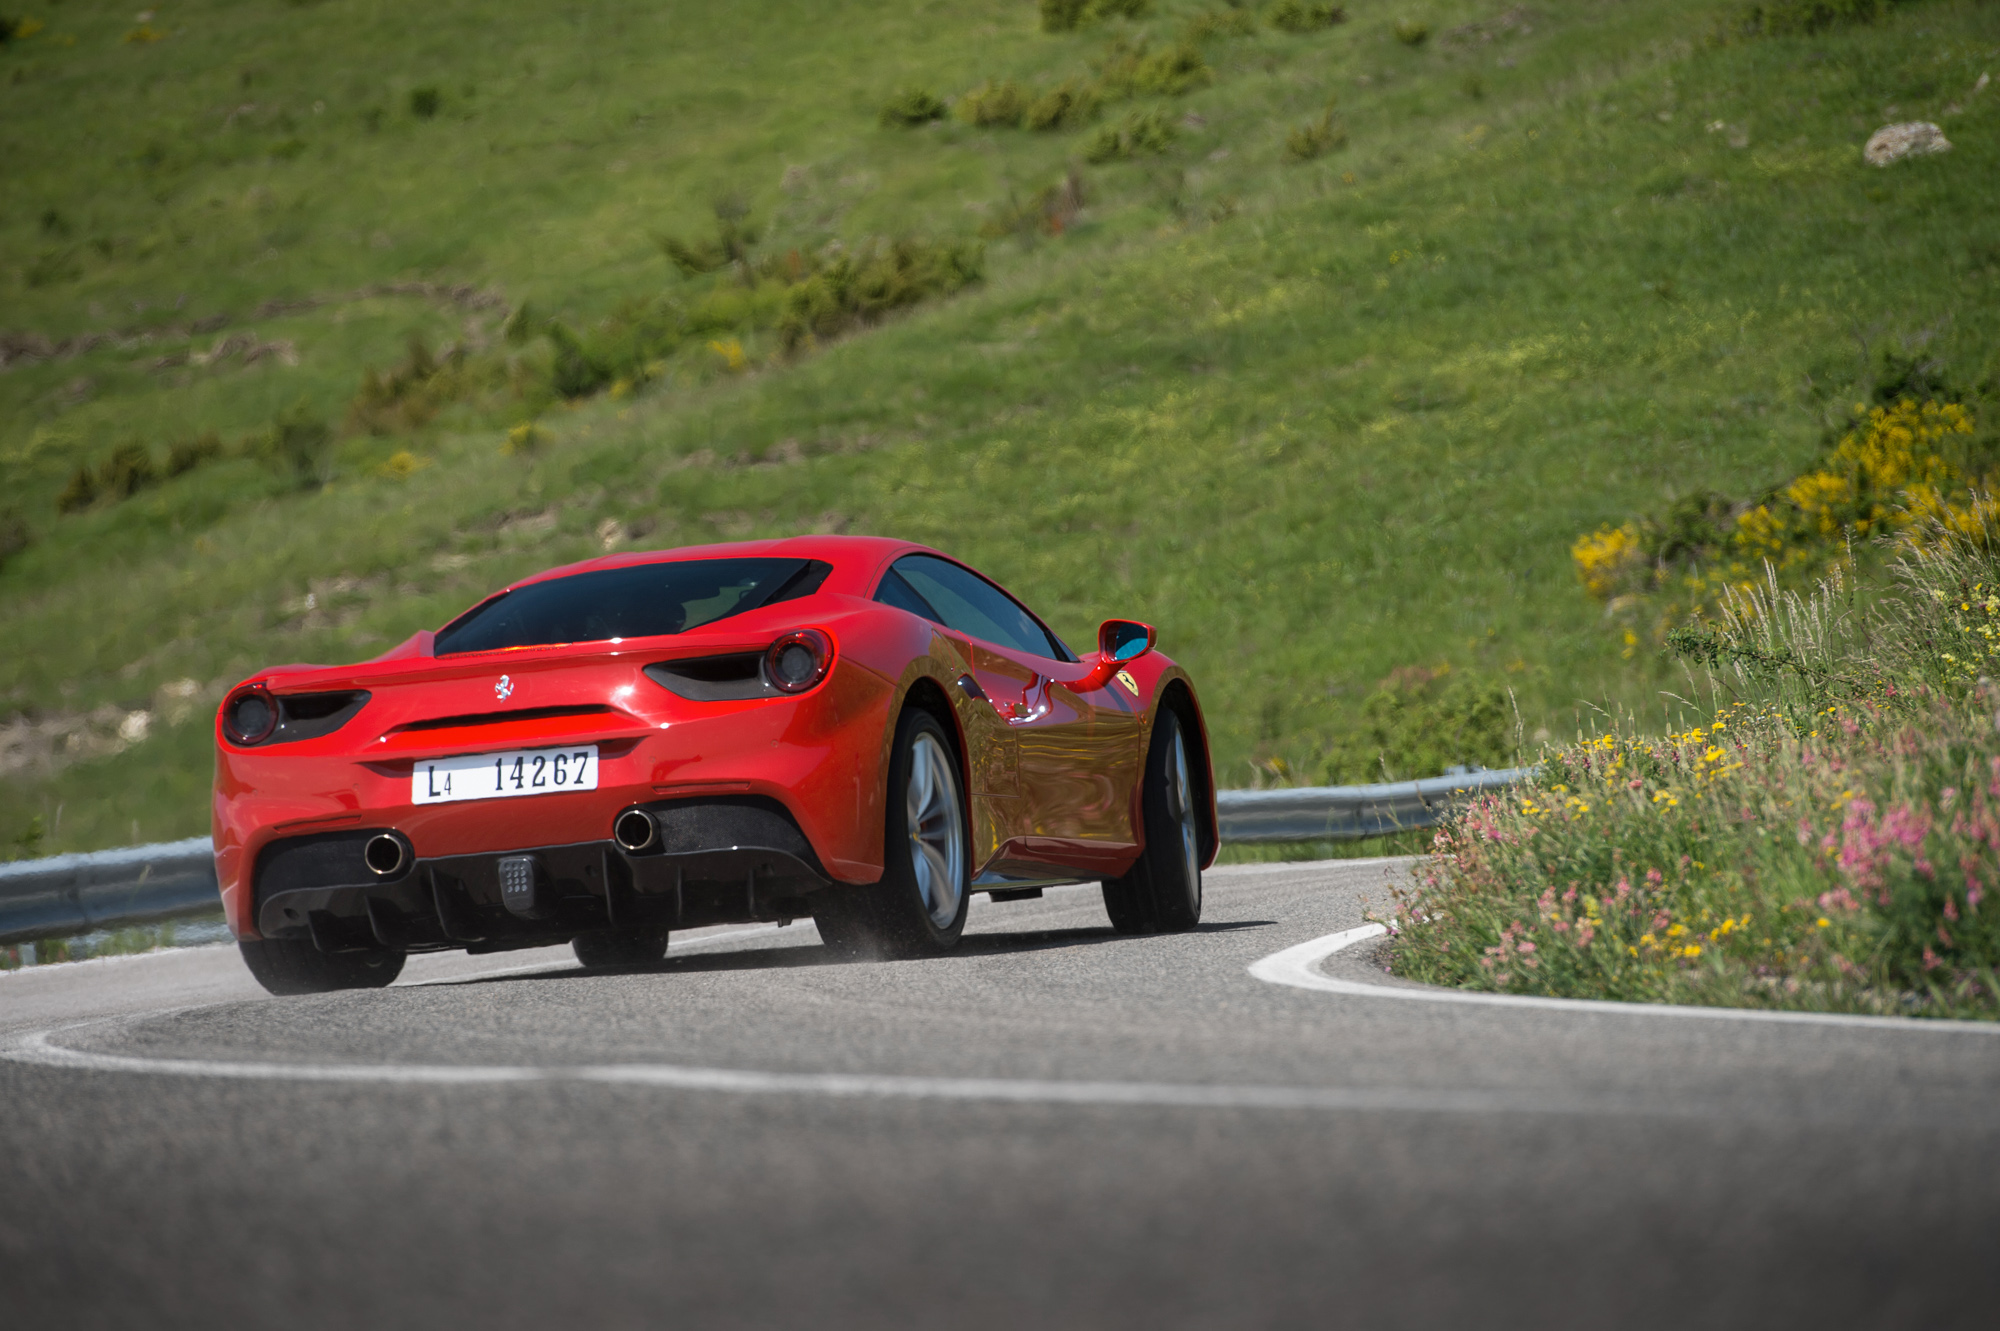 Ferrari 488 GTB review , prices, specs and 0,60 time